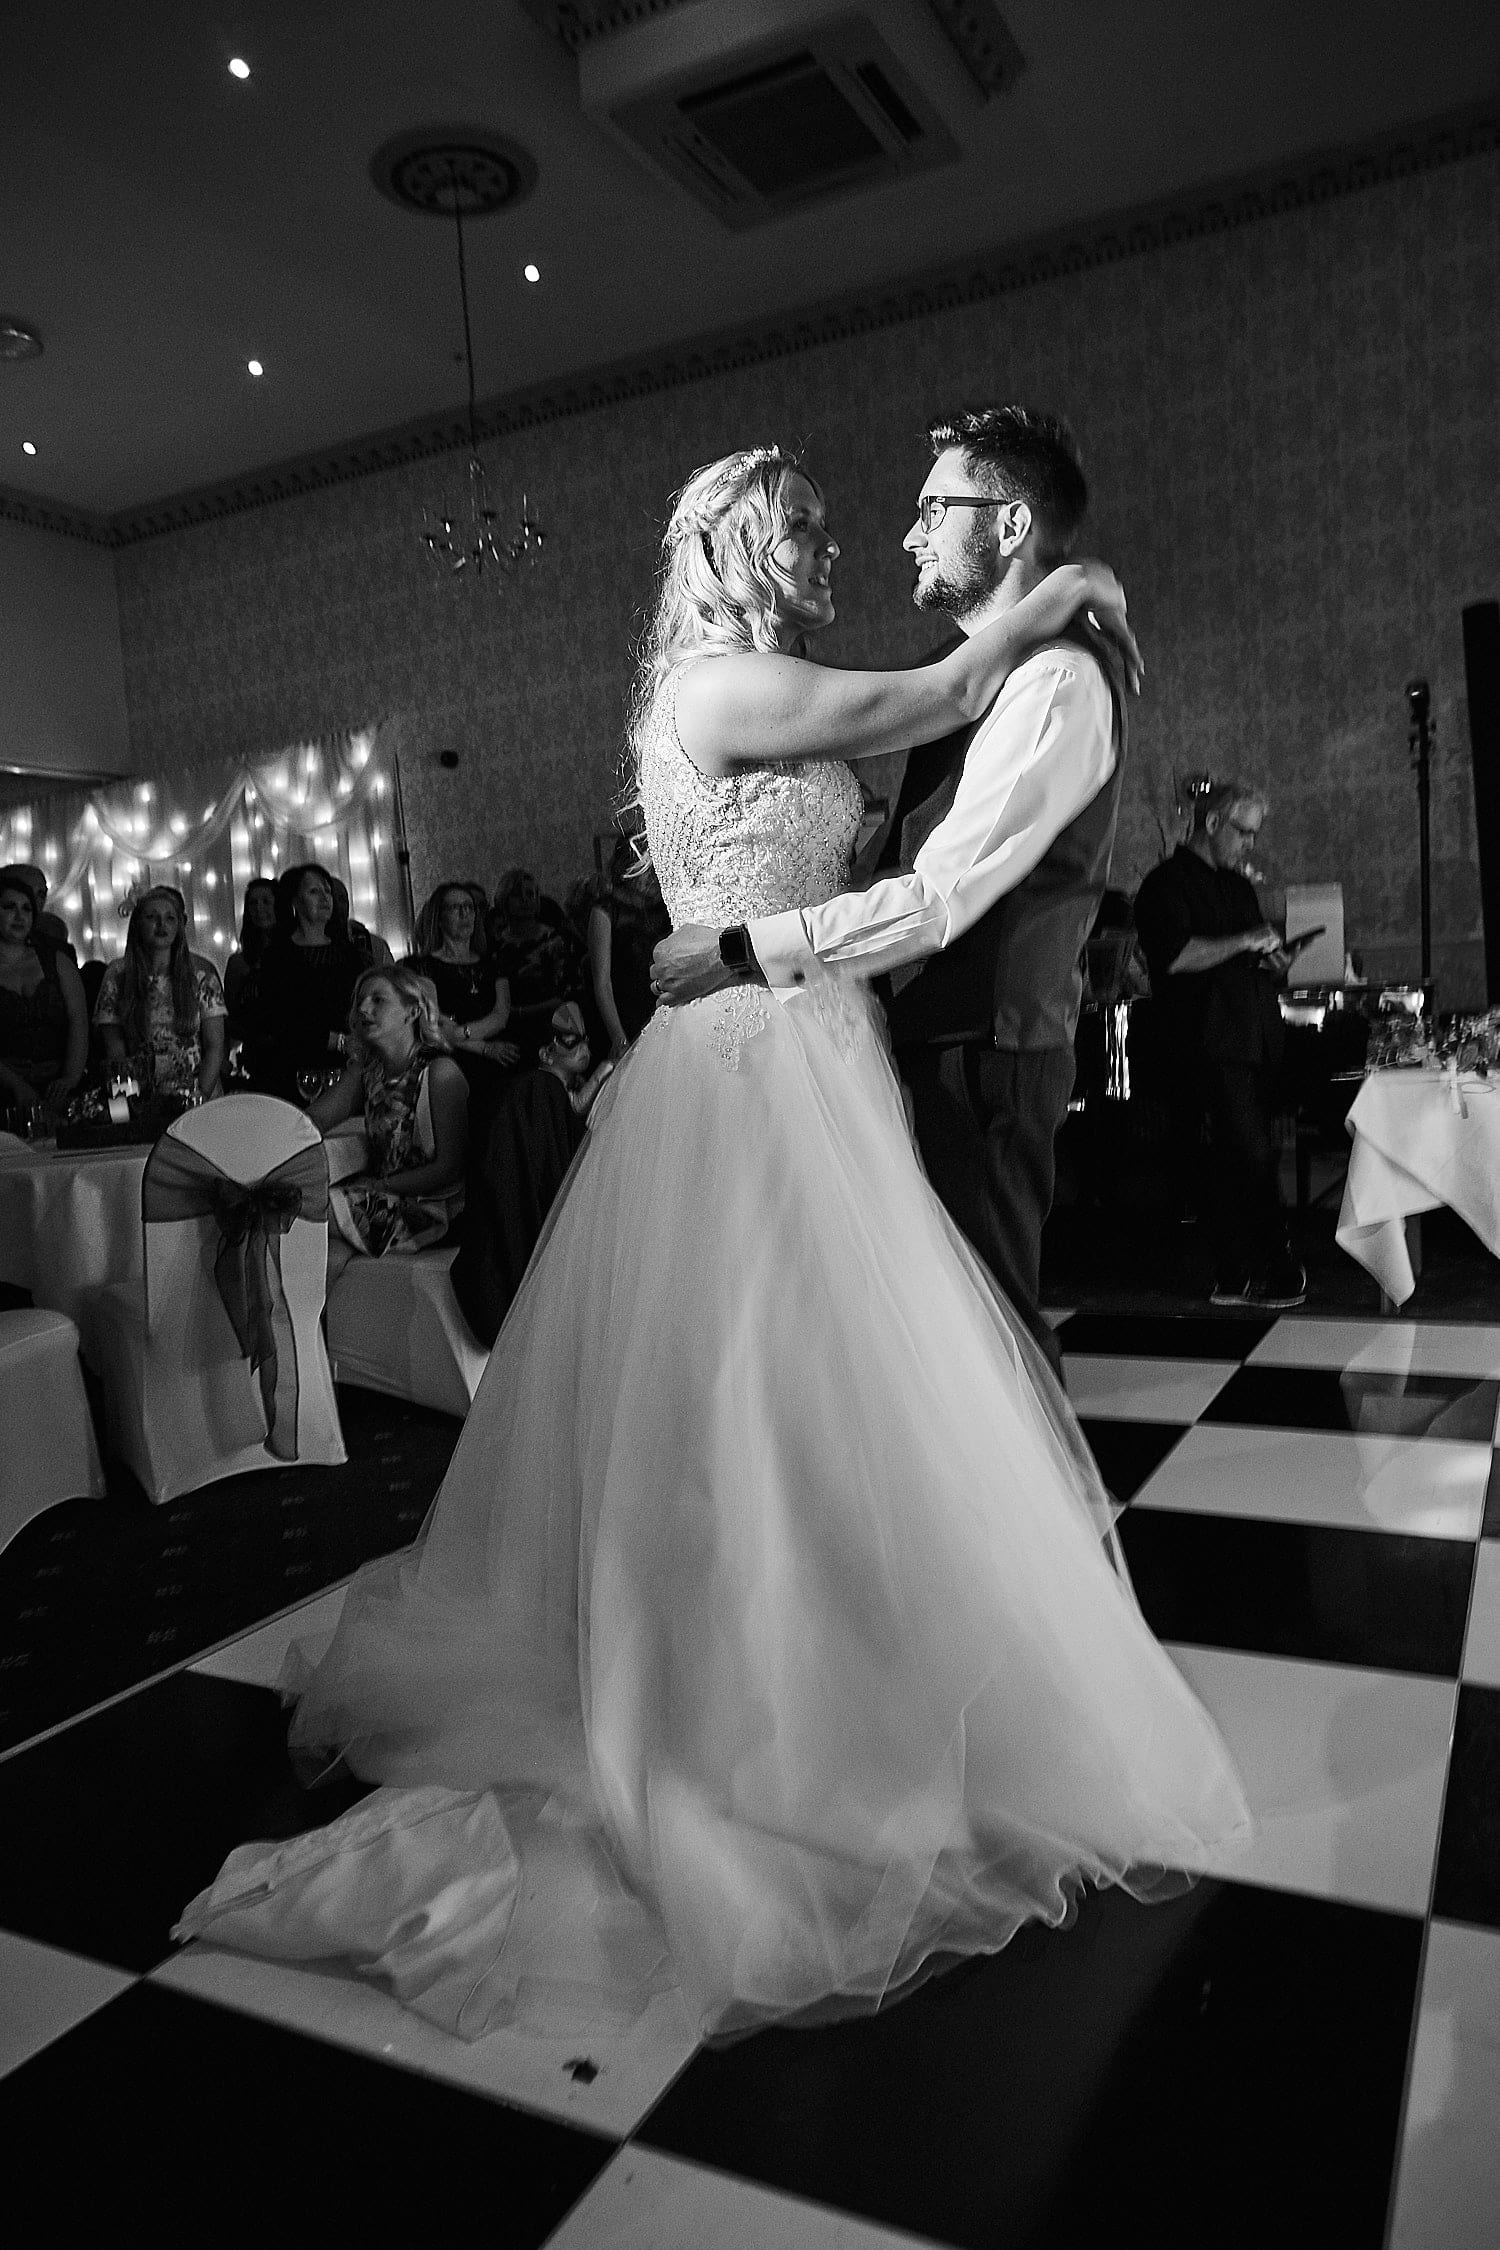 A bride and groom share their first dance on their wedding day